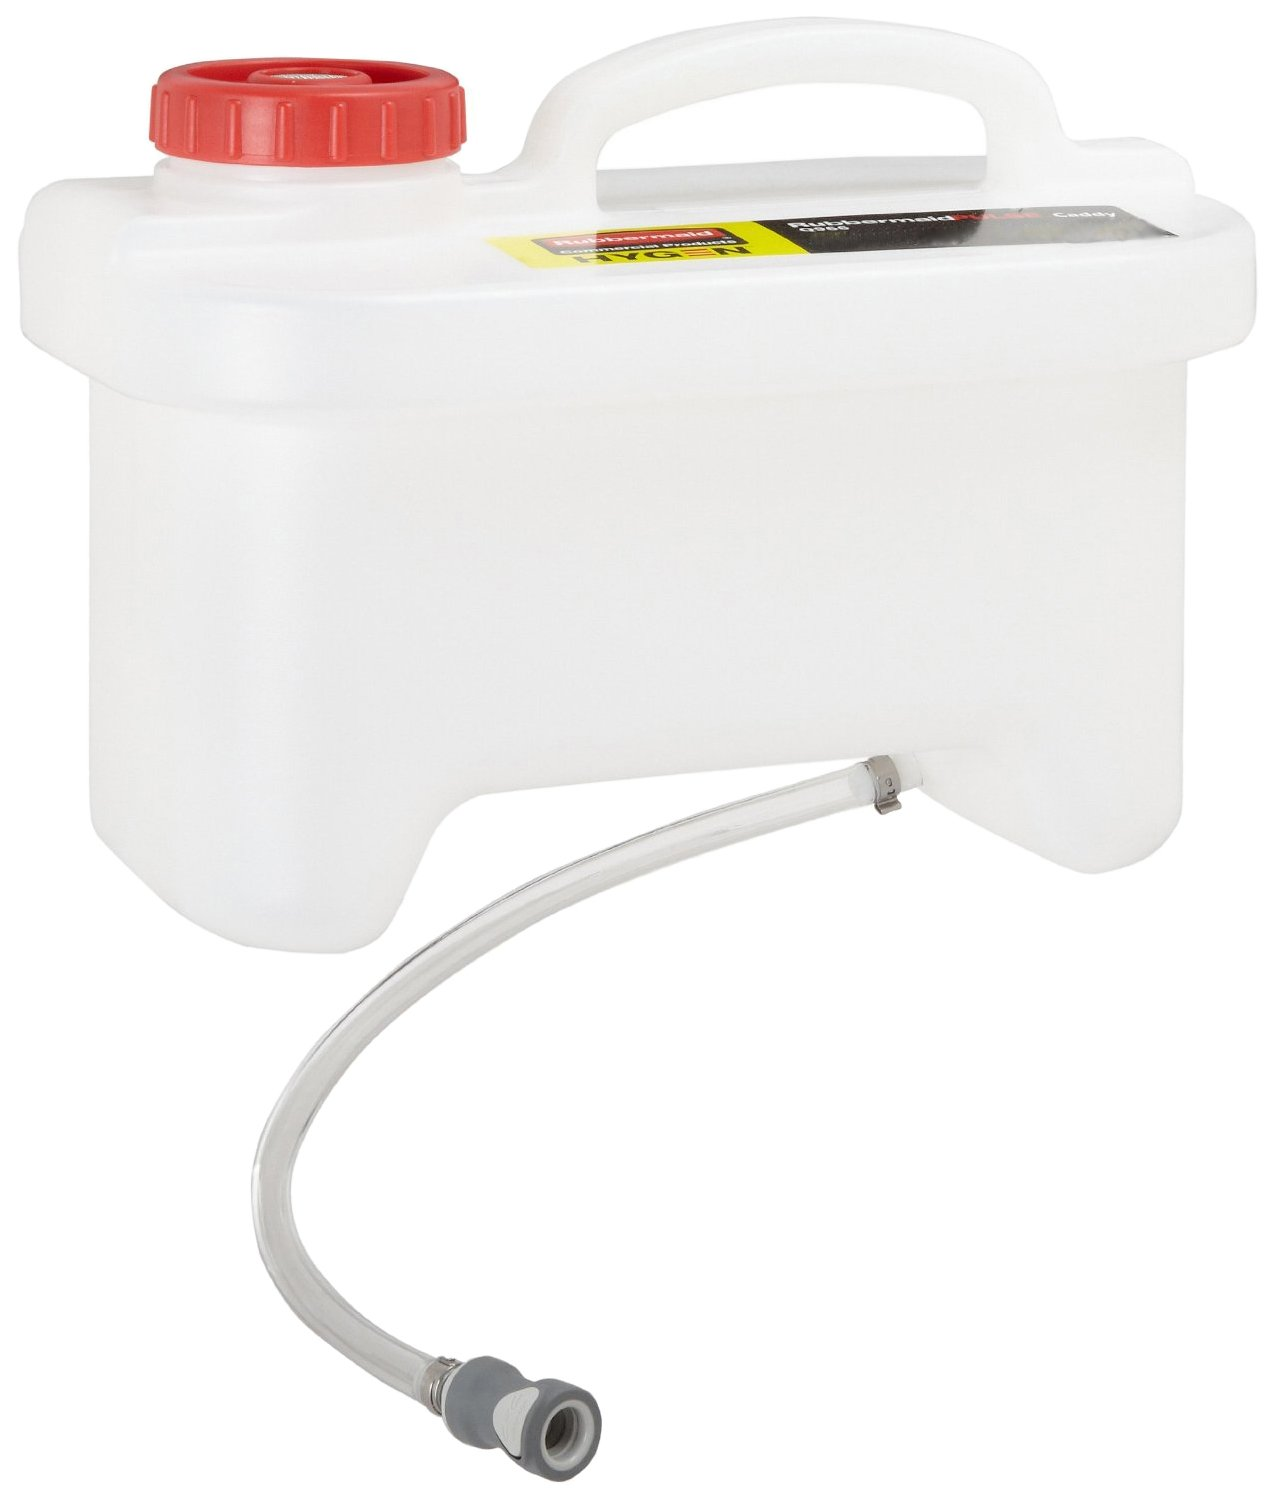 Rubbermaid Commercial Pulse High-Capacity Liquid Caddy, 2 Gallon, FGQ966000000 by Rubbermaid Commercial Products (Image #2)